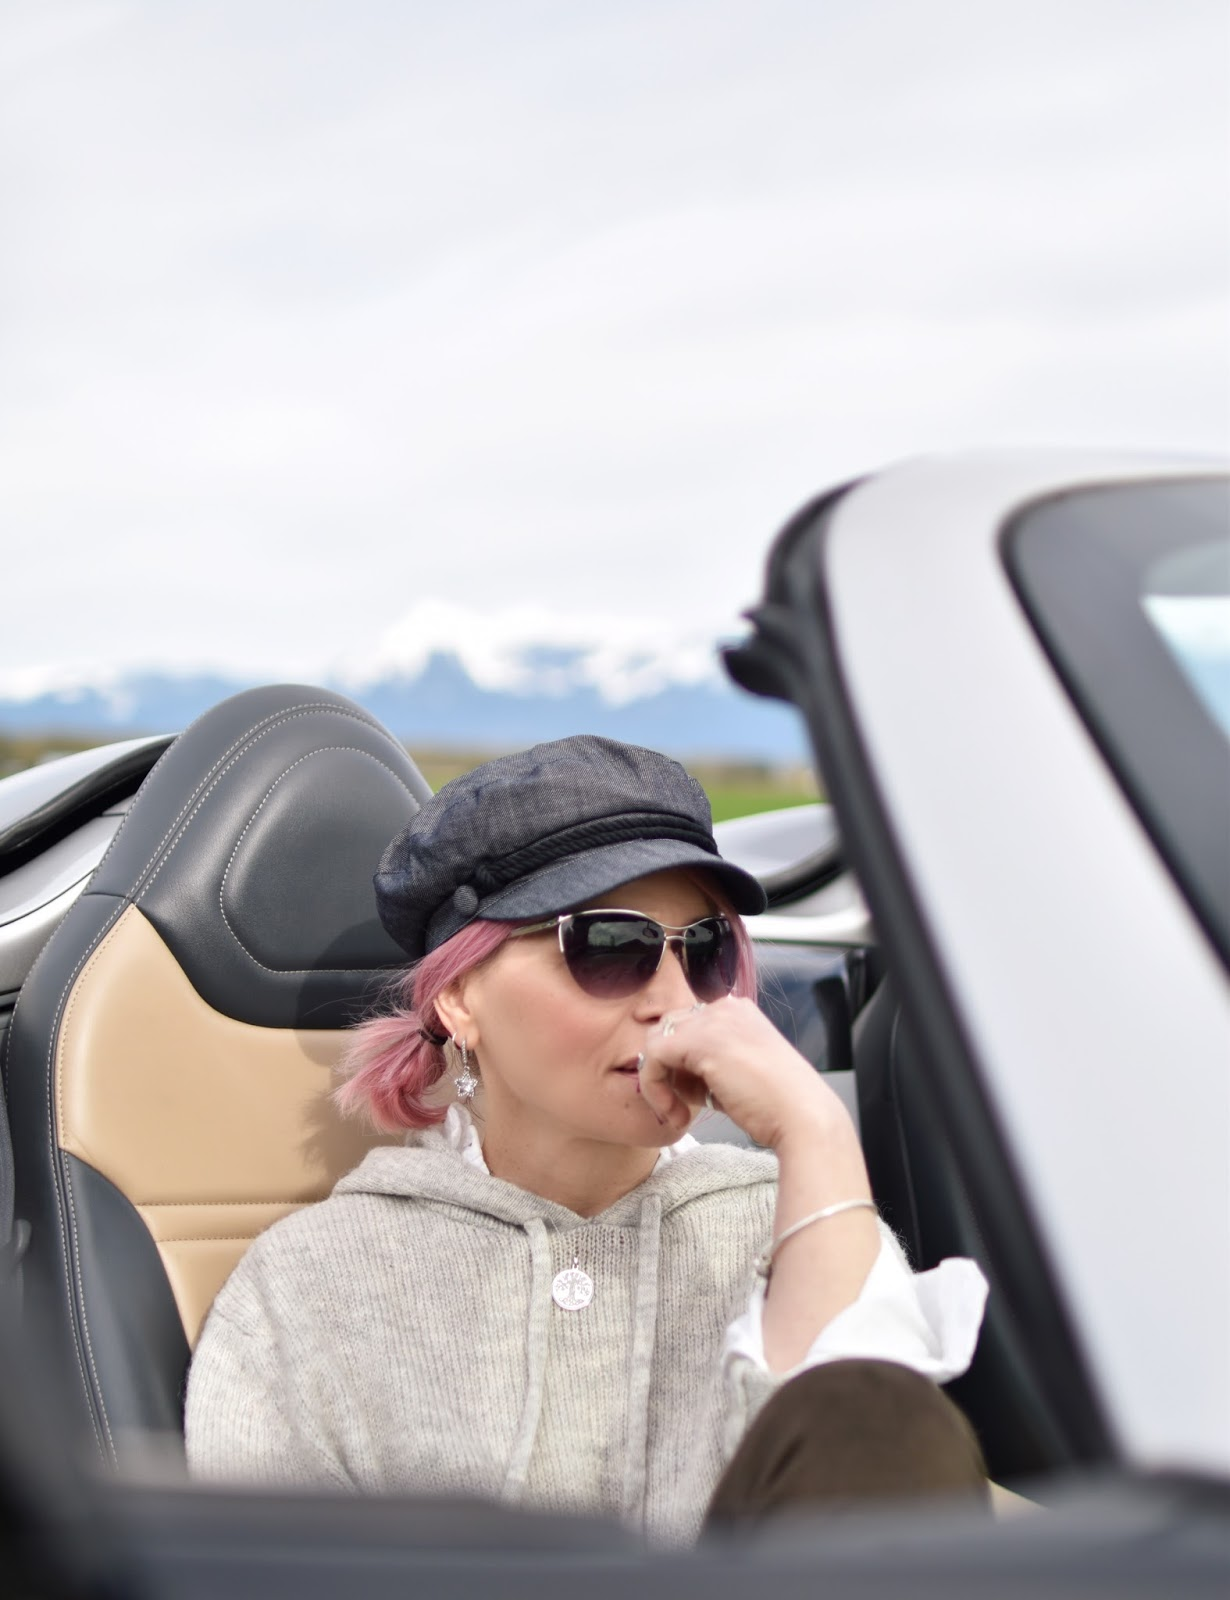 Monika Faulkner outfit inspiration - hoodie sweater, baker boy hat, sunglasses, pink hair